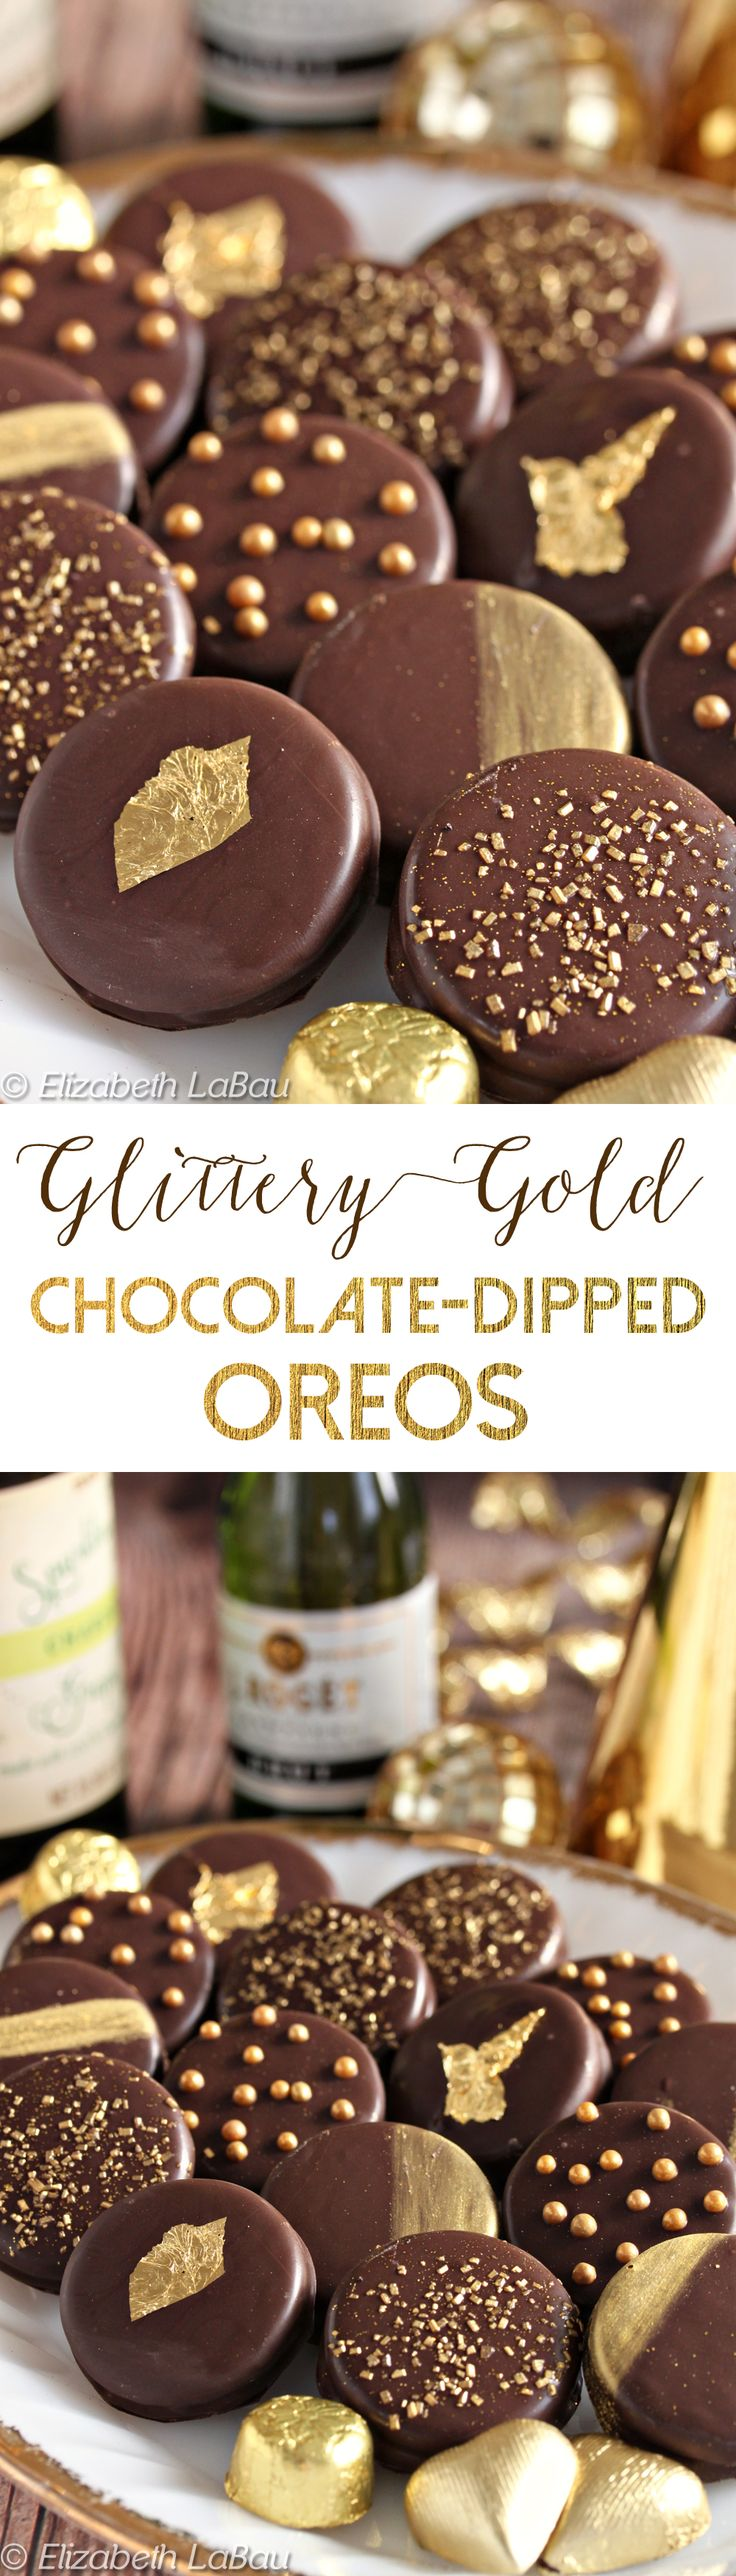 Chocolate-Dipped Oreos get classy with gold accents! These cookies are super easy to make, and add flash and glitz to any party!   From candy.about.com